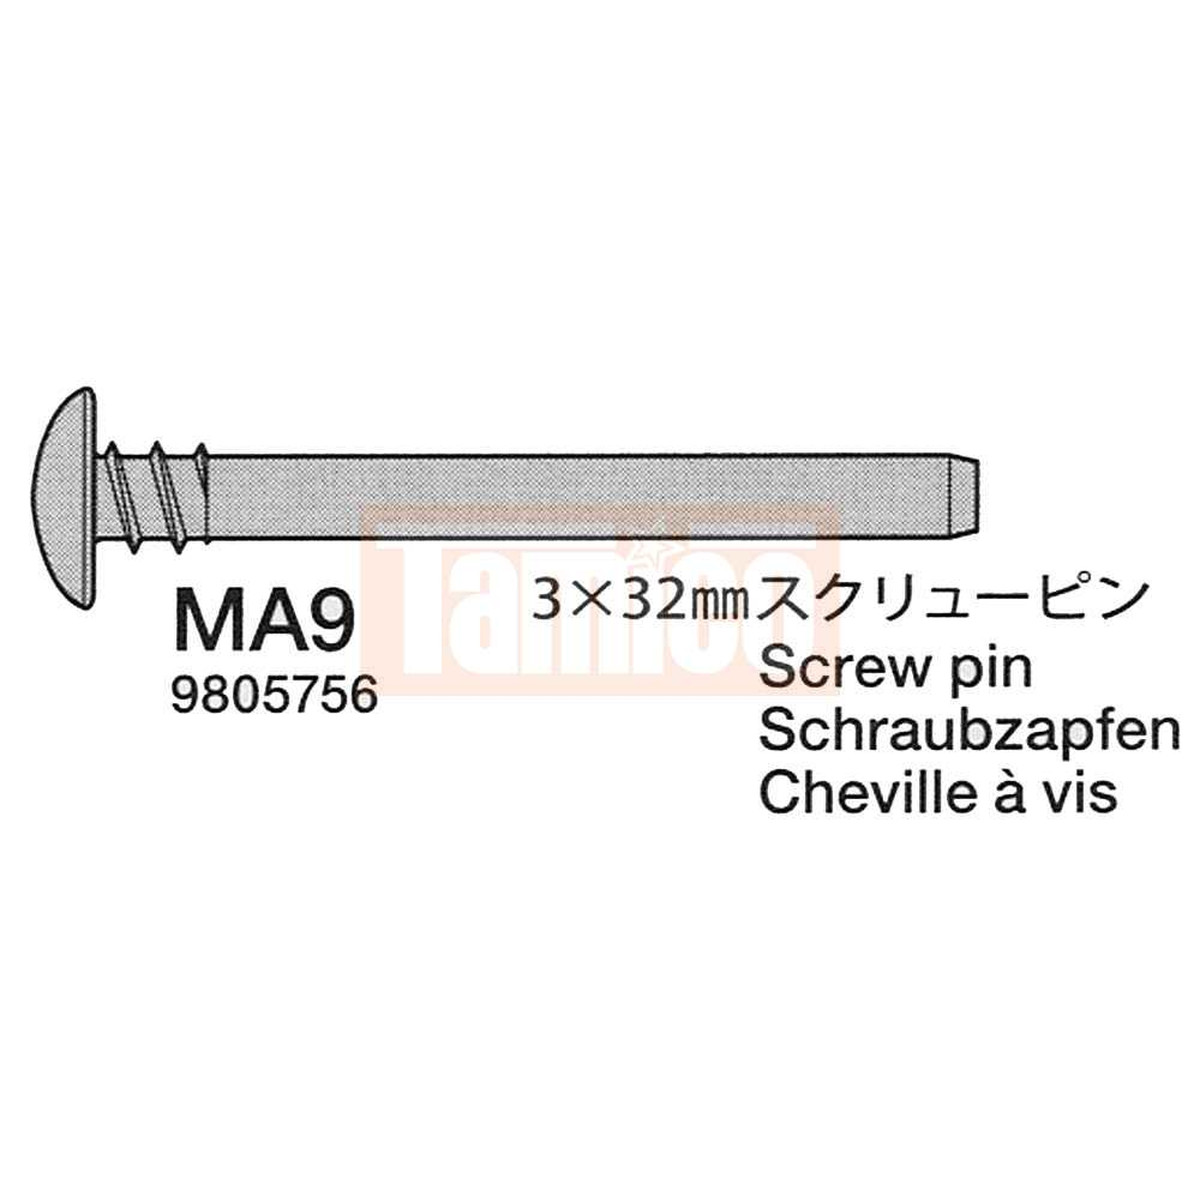 Tamiya Screw Pin 3x32mm 4 Stk